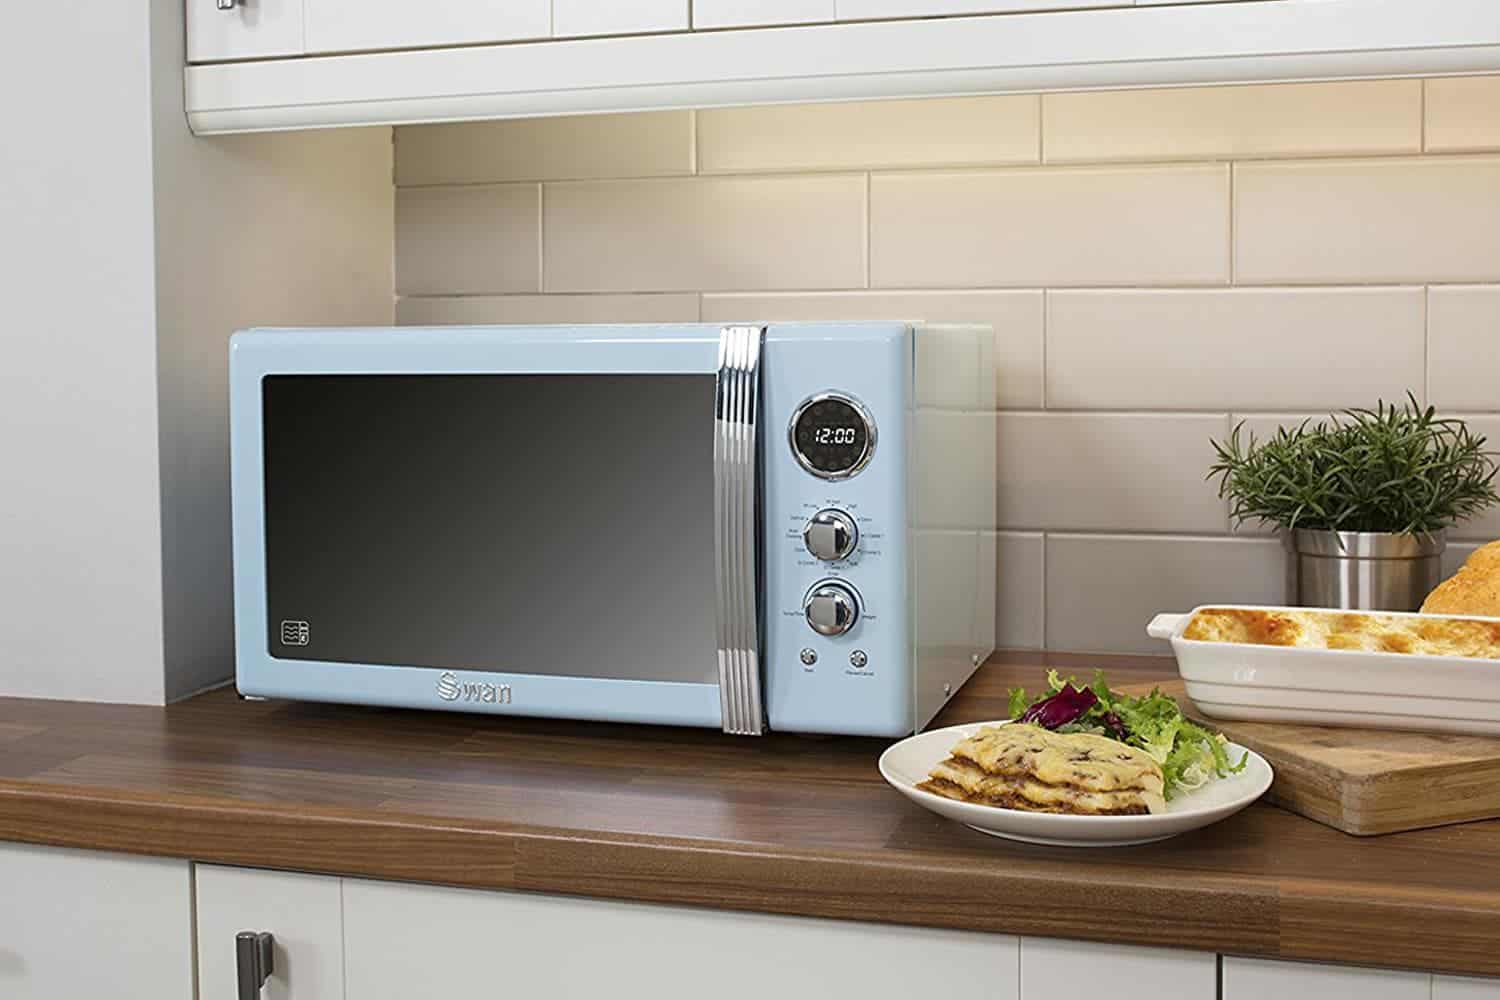 Best Microwave for Your Kitchen